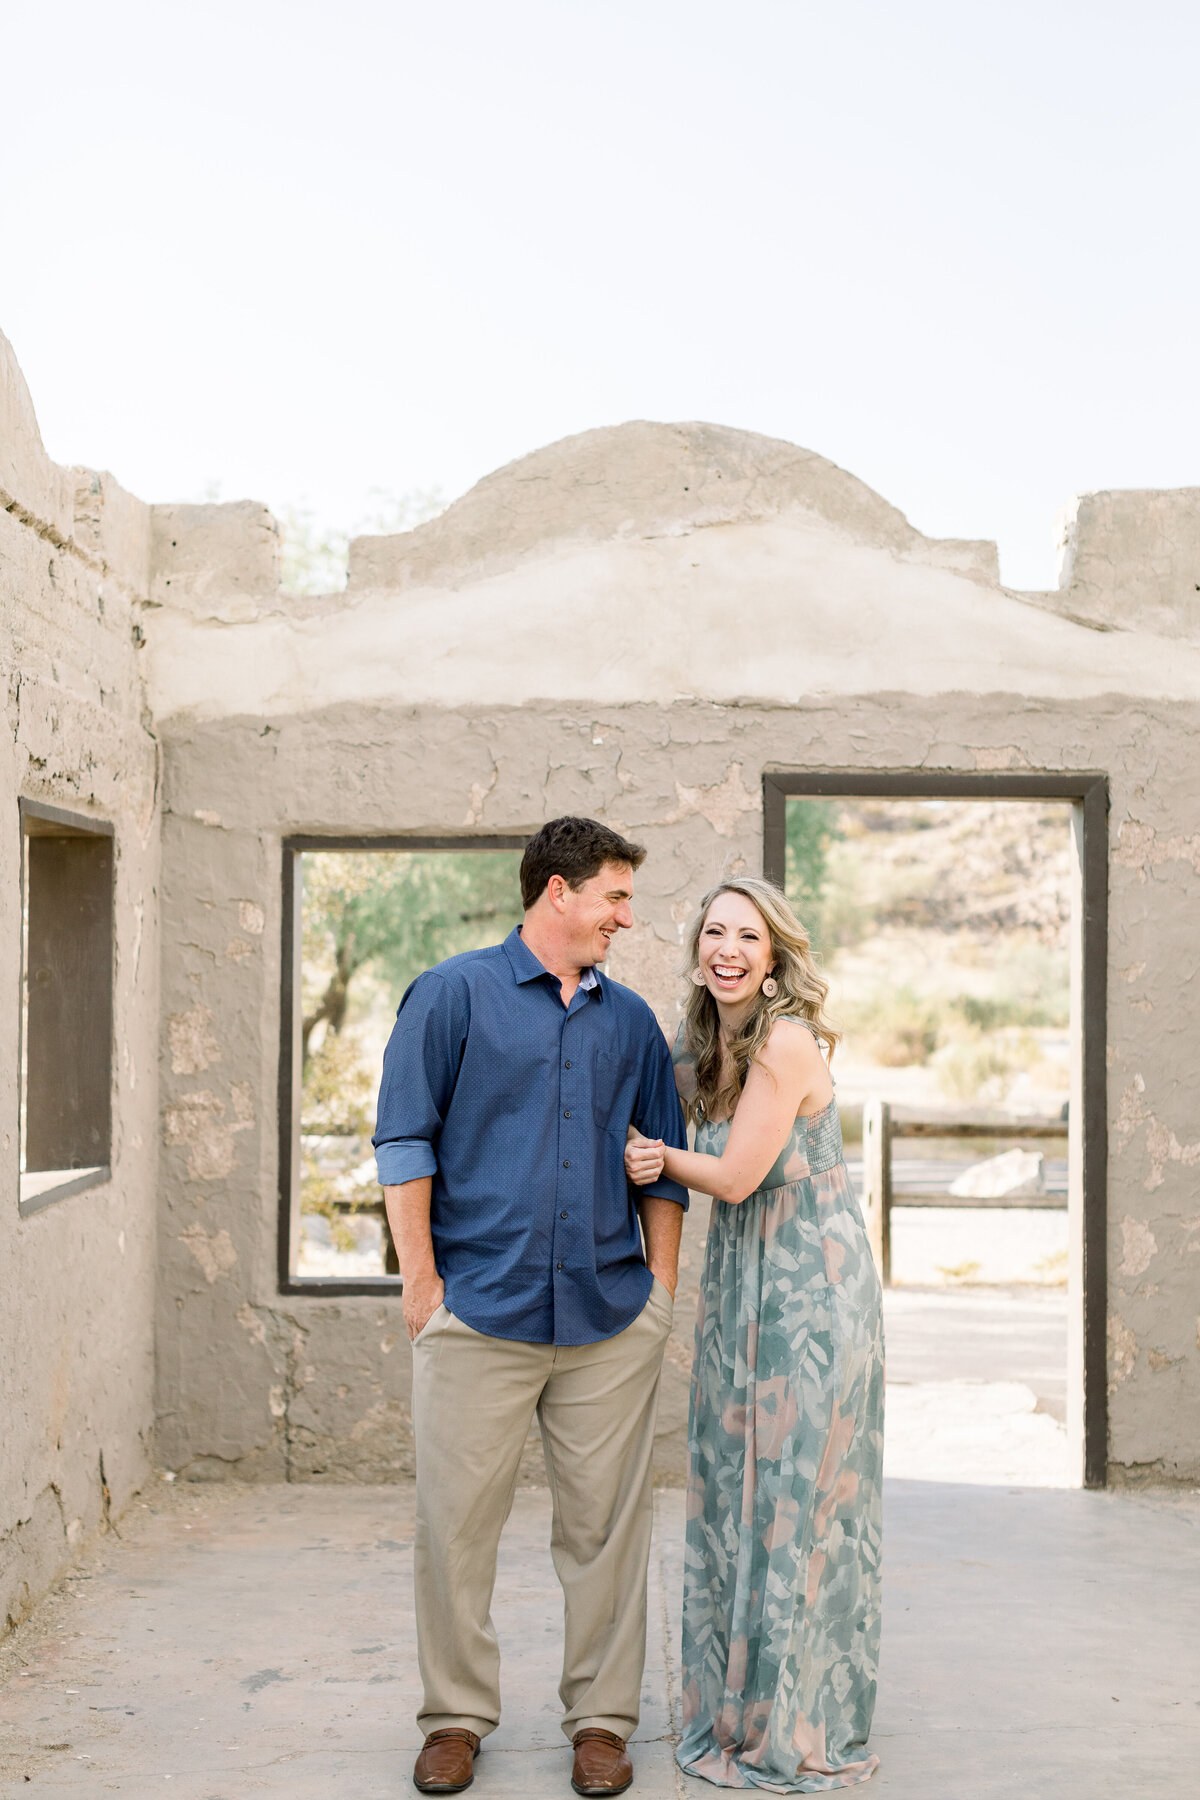 caitlin_audrey_photography (22 of 137)